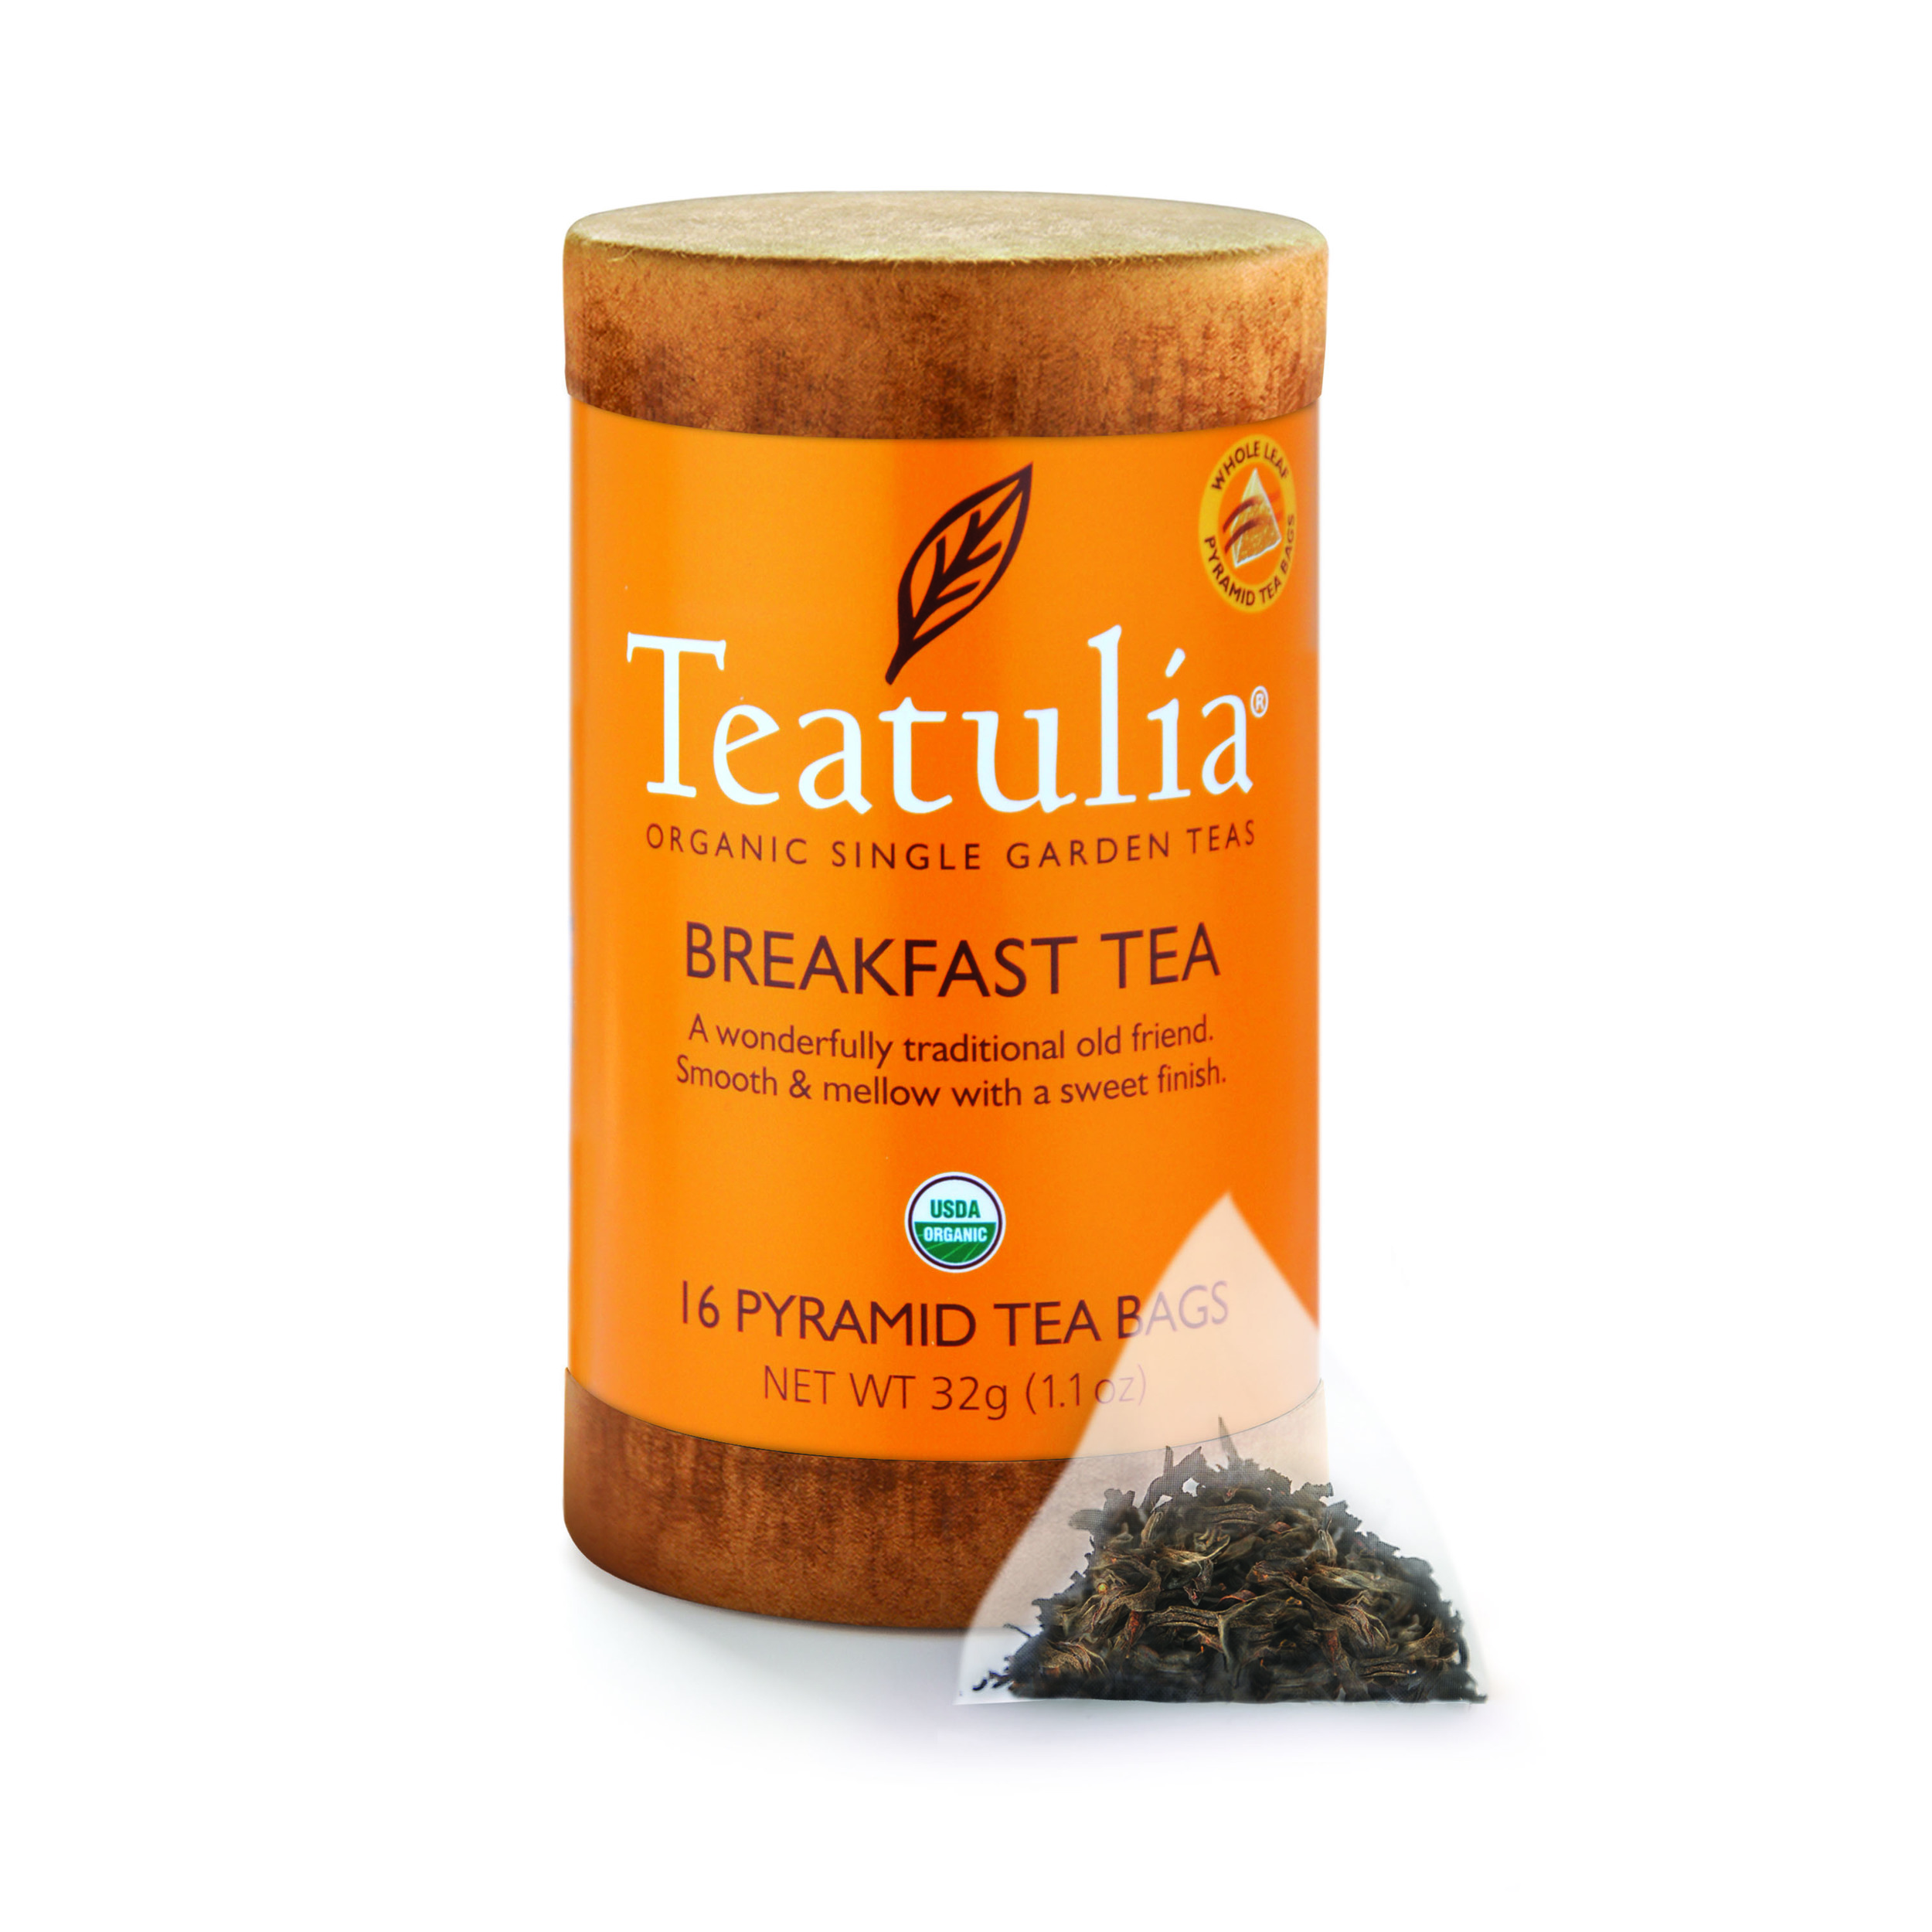 Teatulia_16ct_Breakfast.jpg